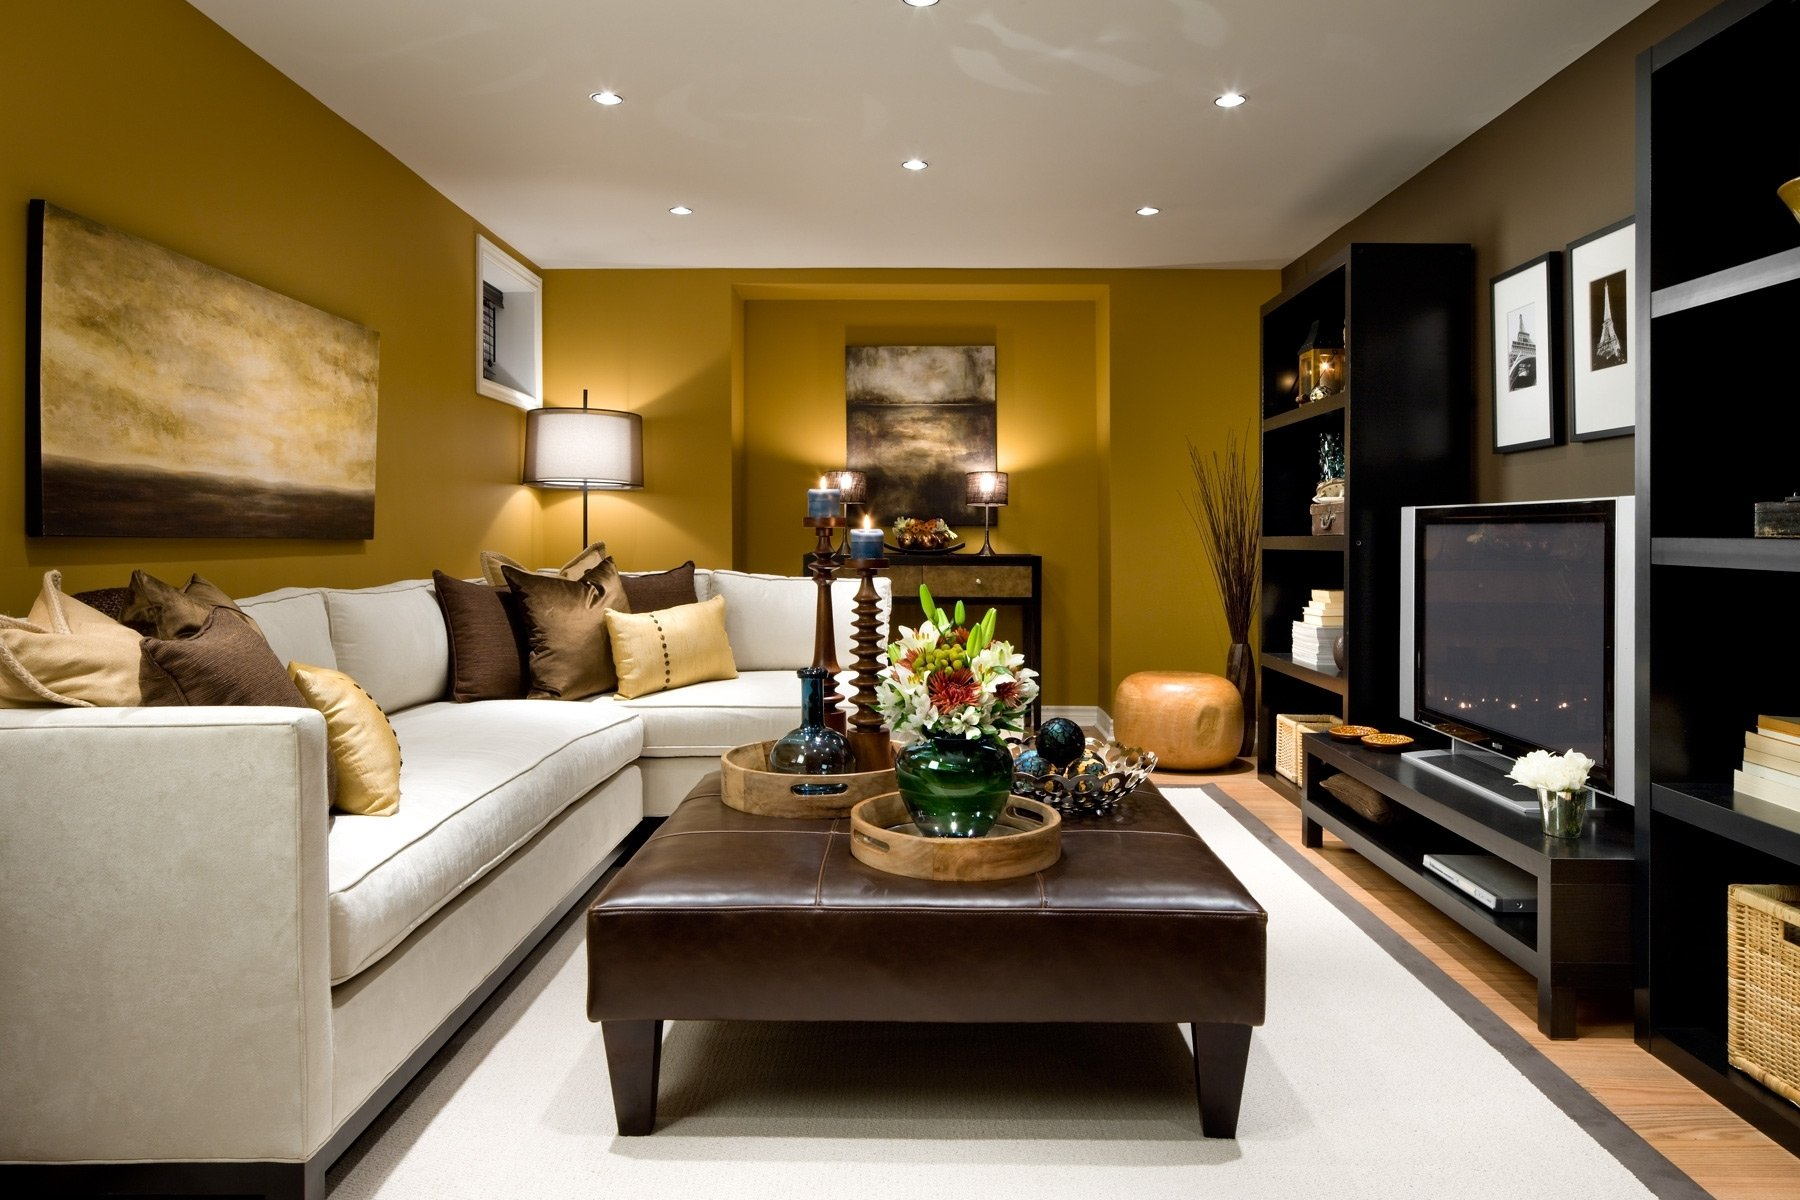 10 Awesome Design Ideas For Small Living Room 50 best small living room design ideas for 2018 15 2020